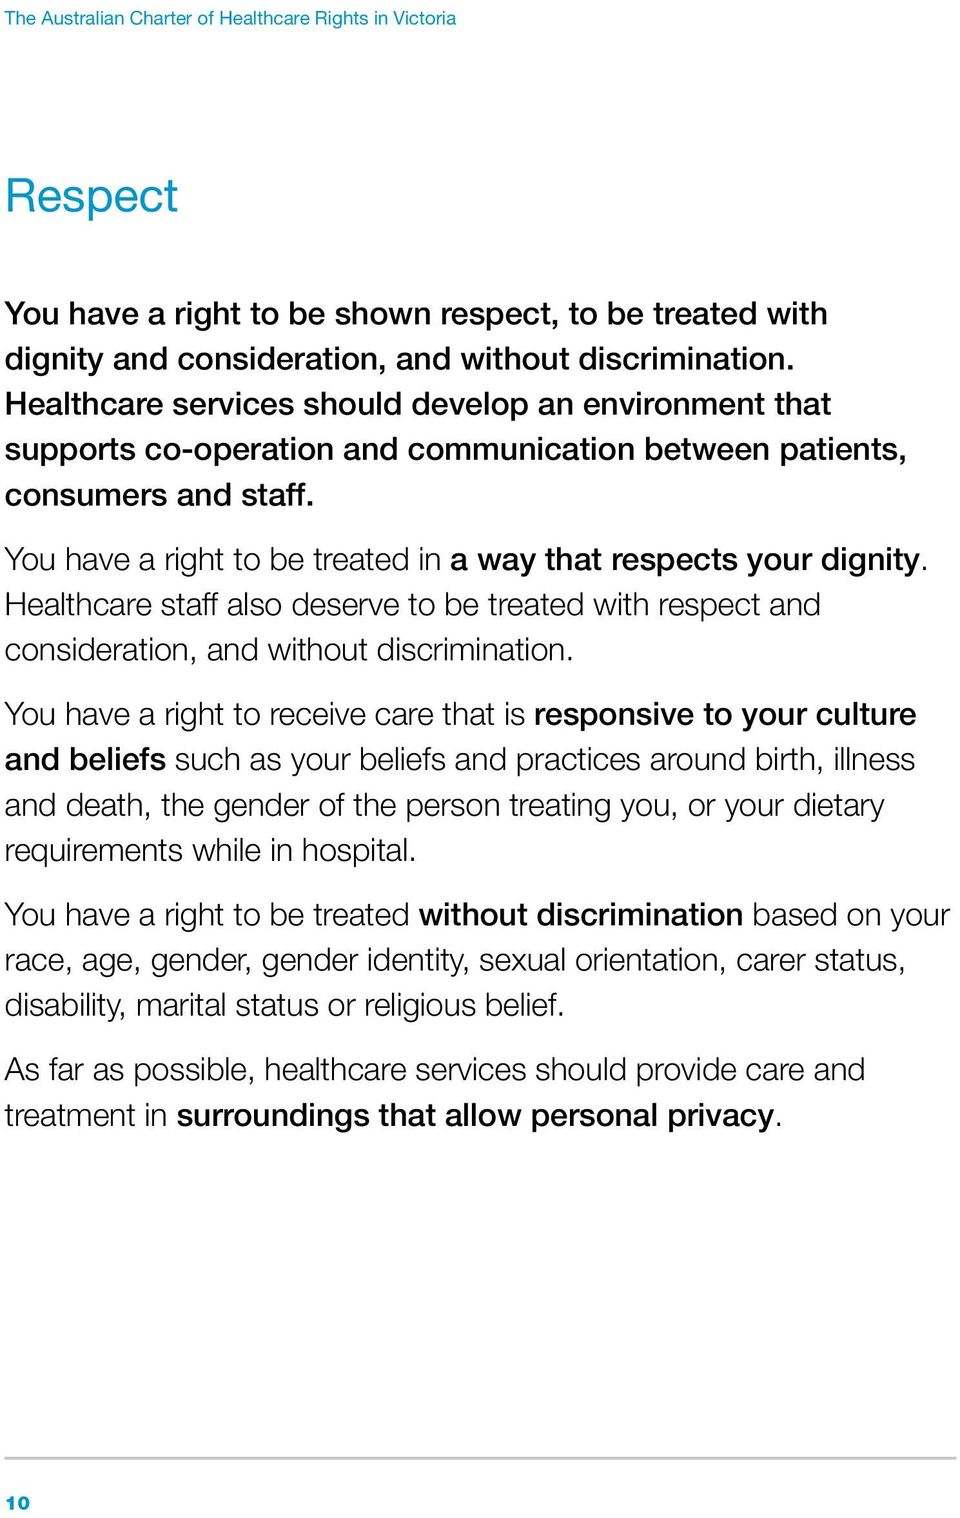 You have a right to be treated in a way that respects your dignity. Healthcare staff also deserve to be treated with respect and consideration, and without discrimination.